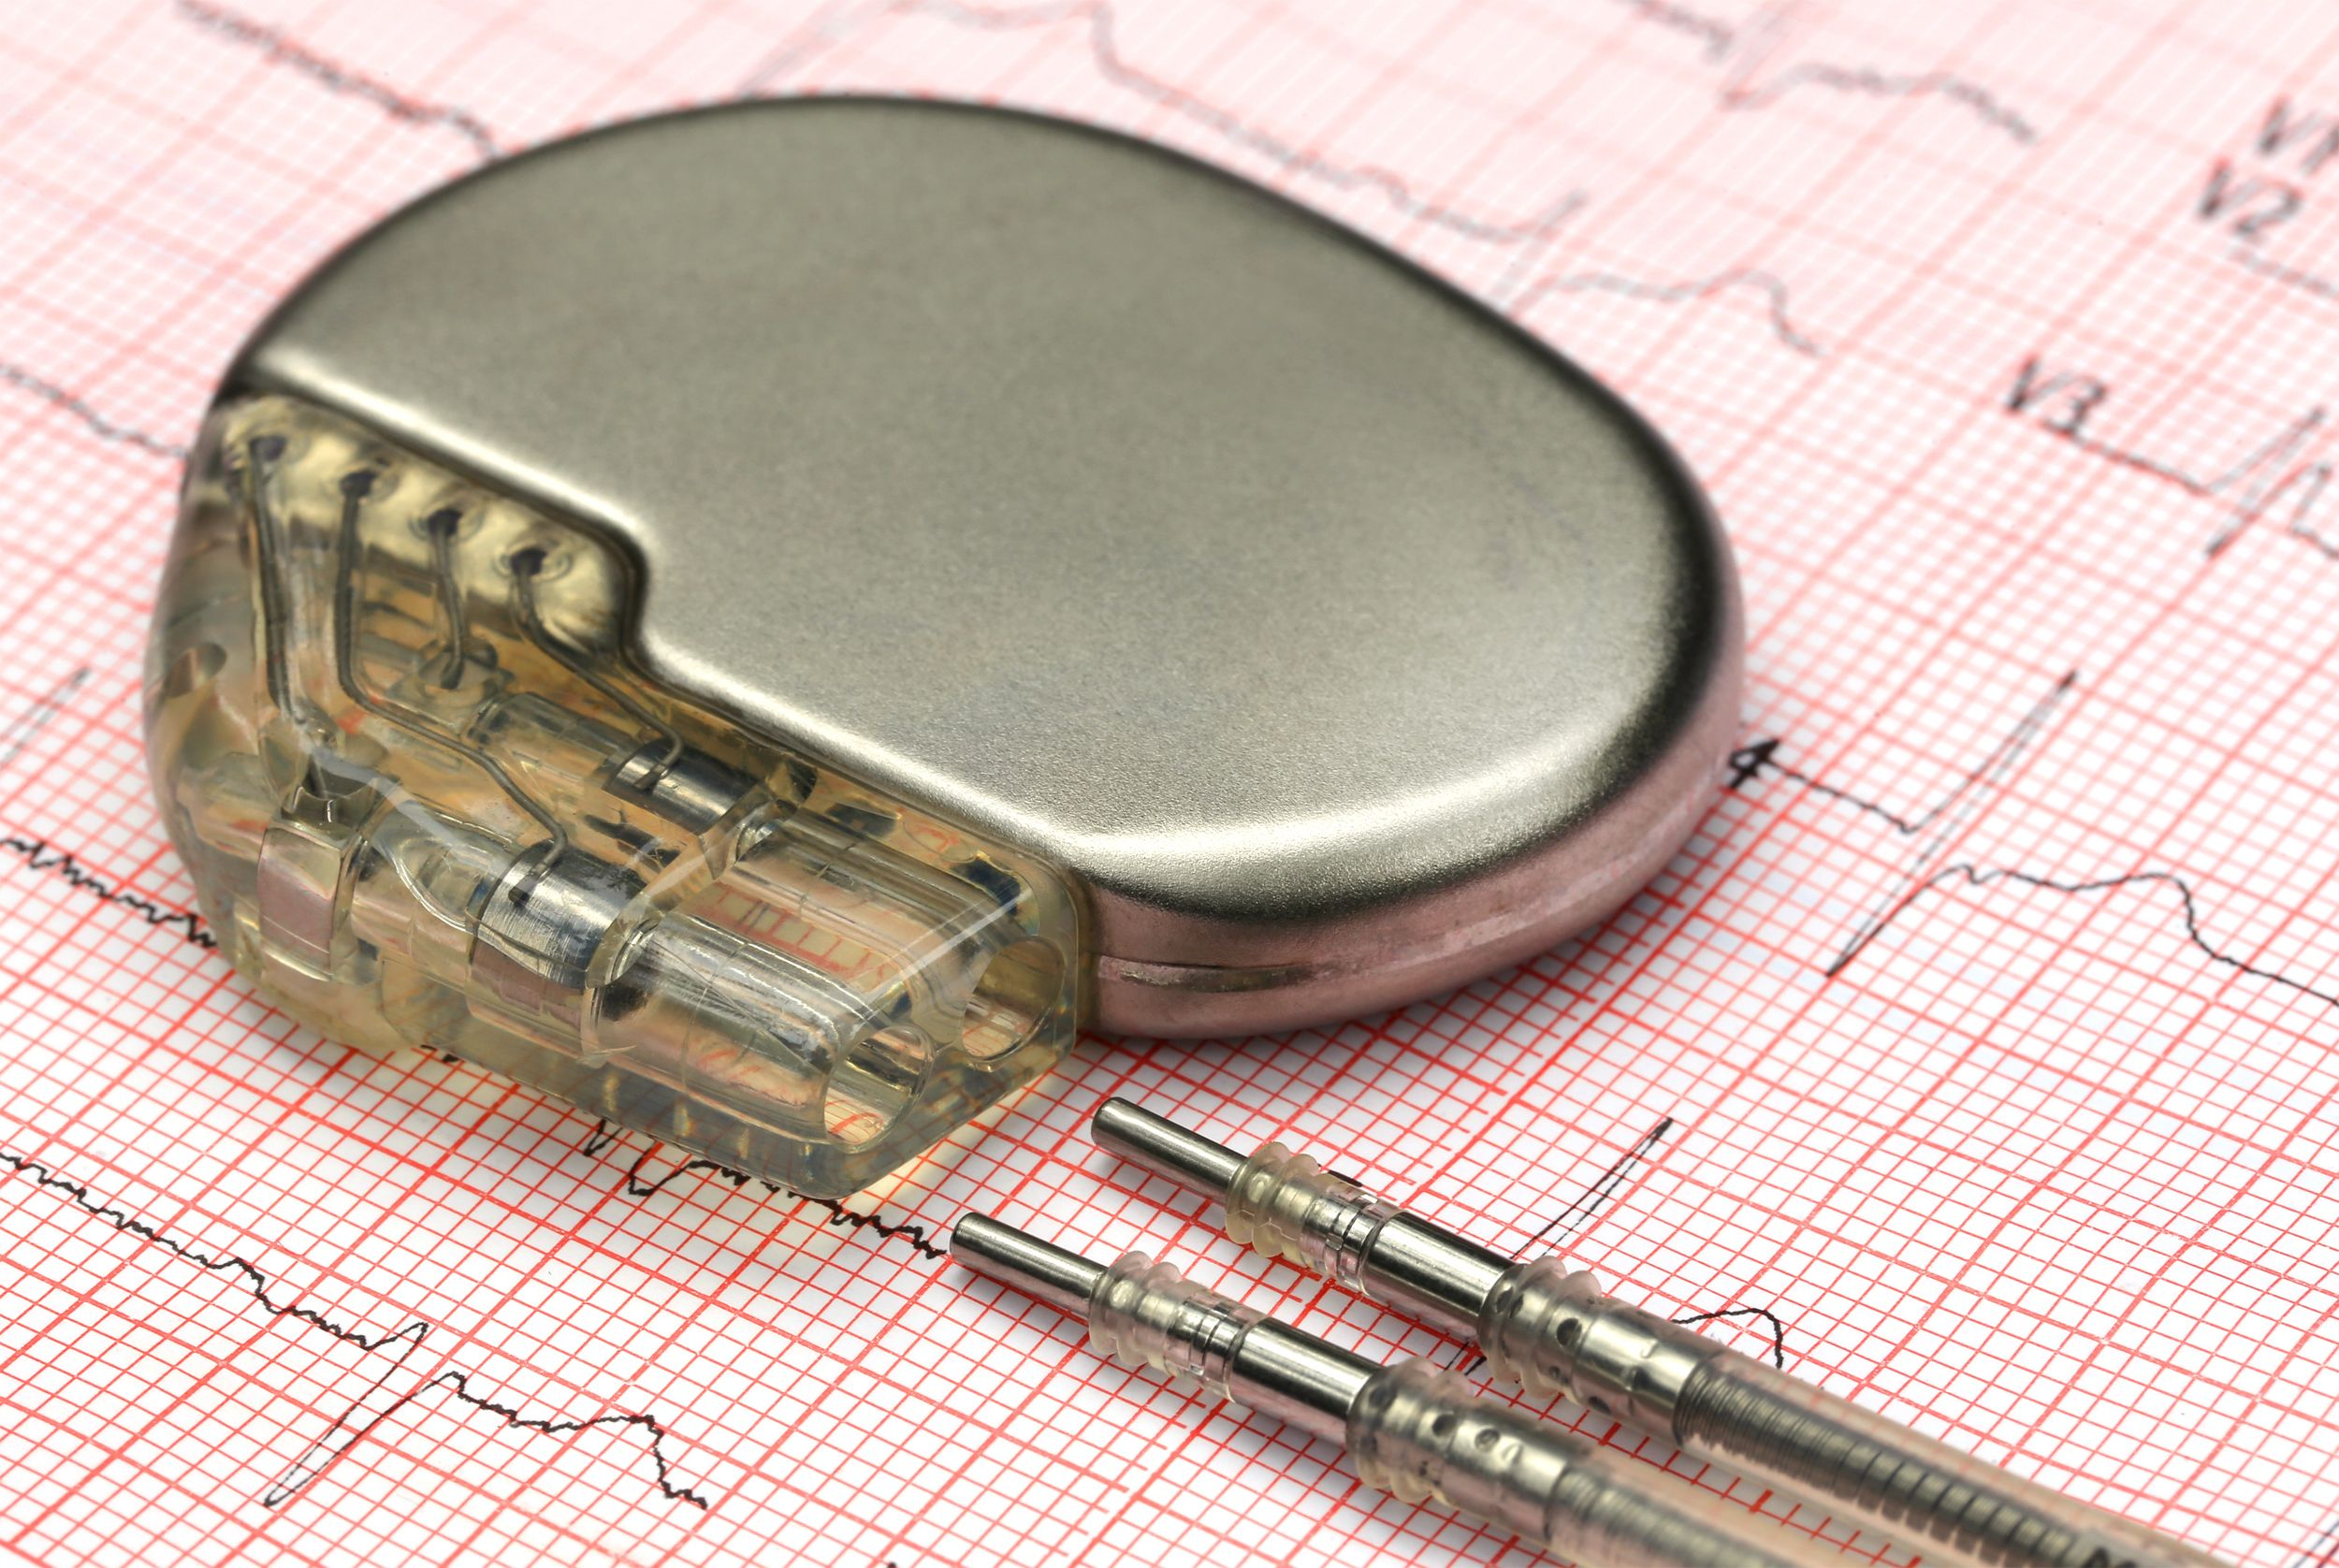 A pacemaker